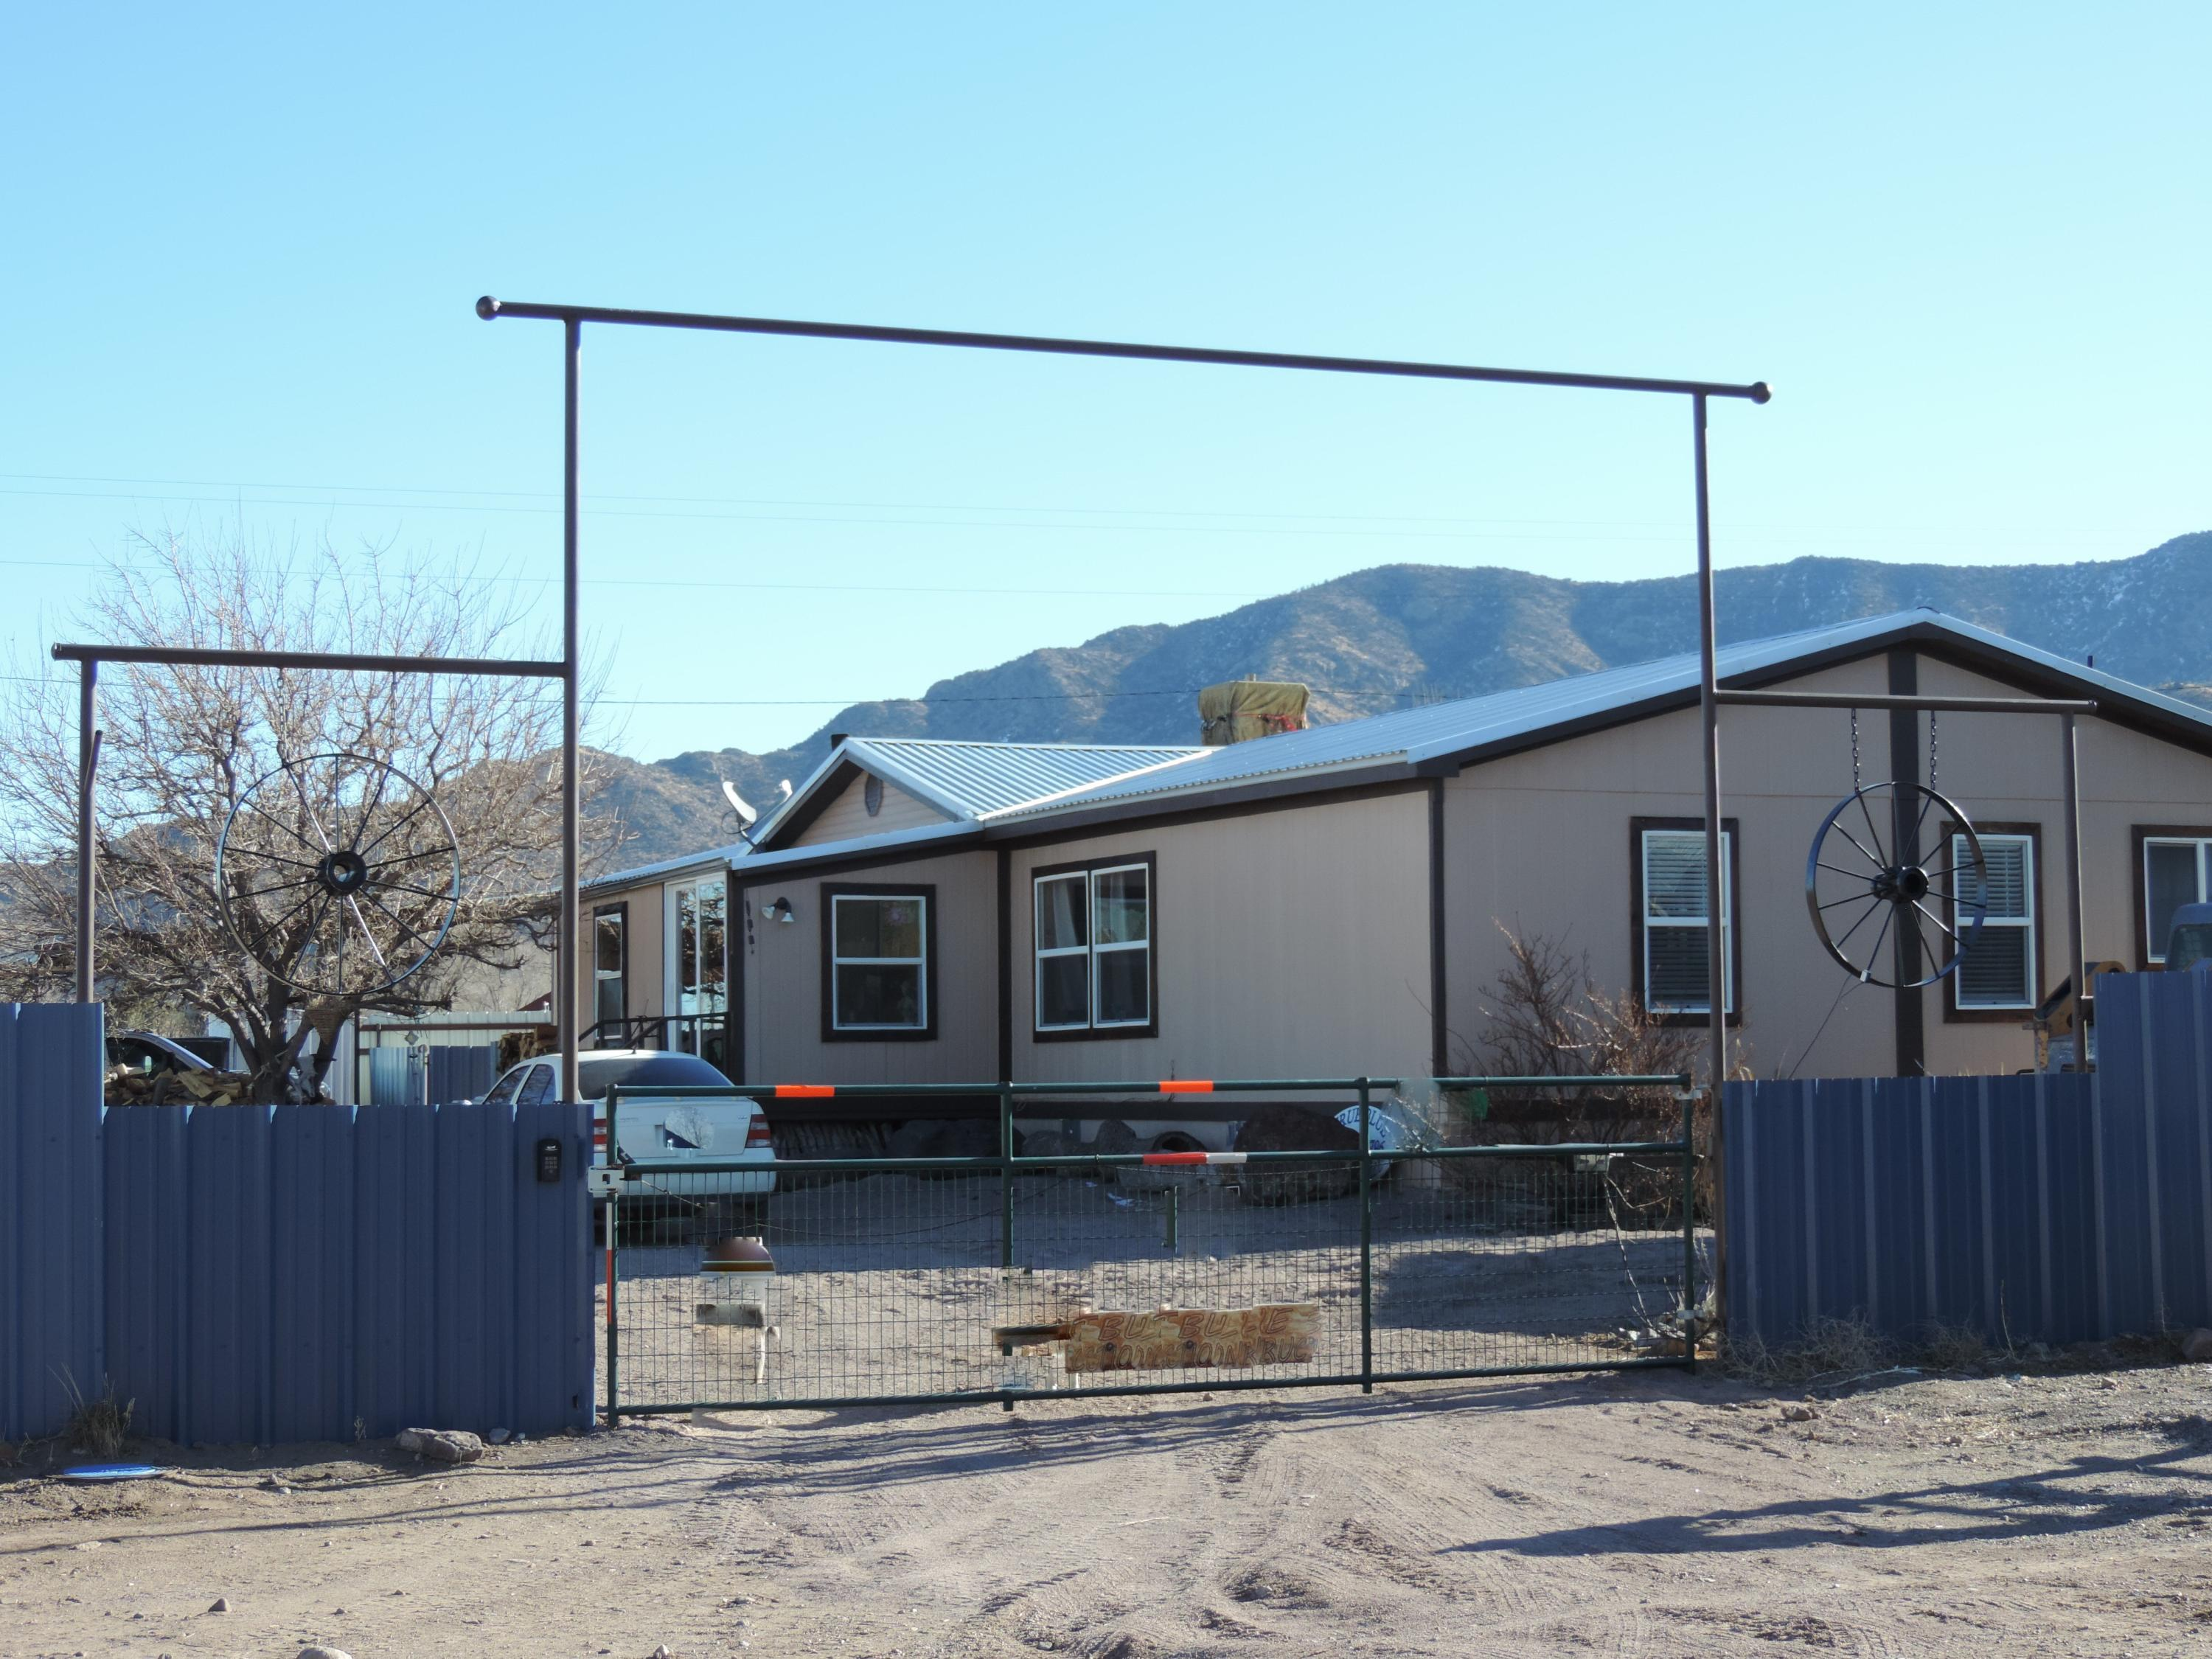 701 S Elm Street, Magdalena, NM 87825 - Magdalena, NM real estate listing